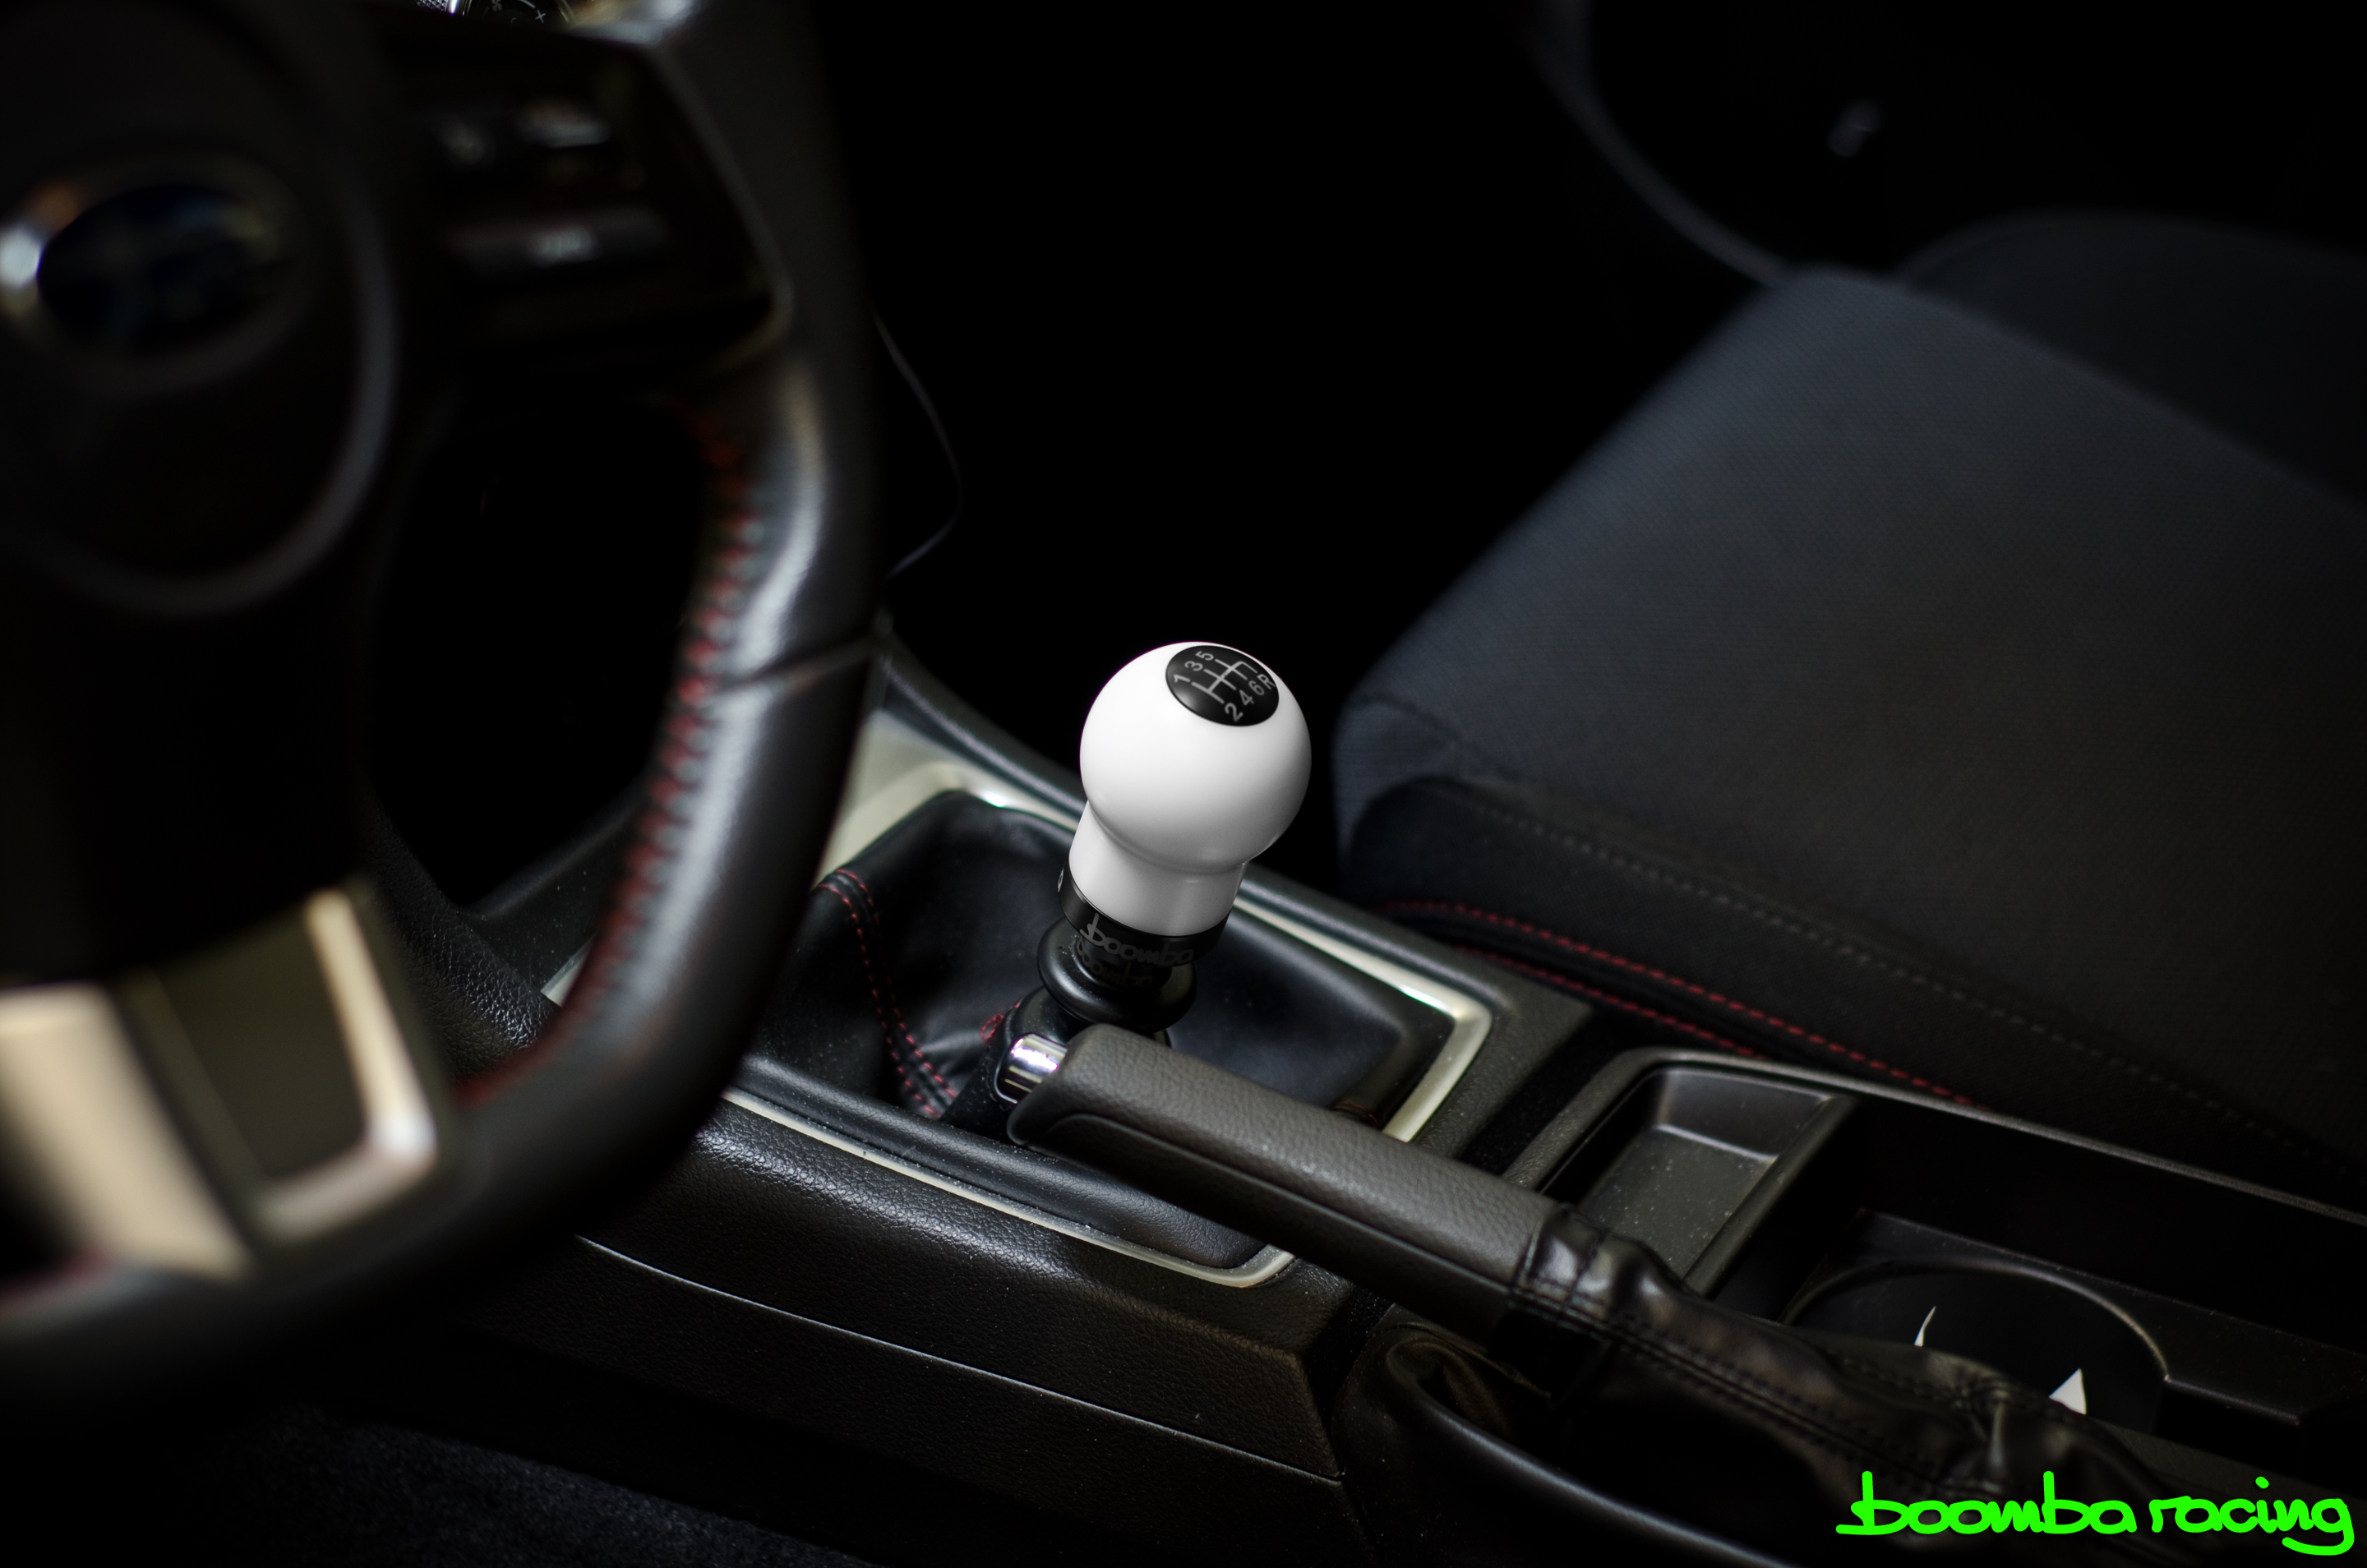 Sneak peek at a new weighted shift knob design we've been